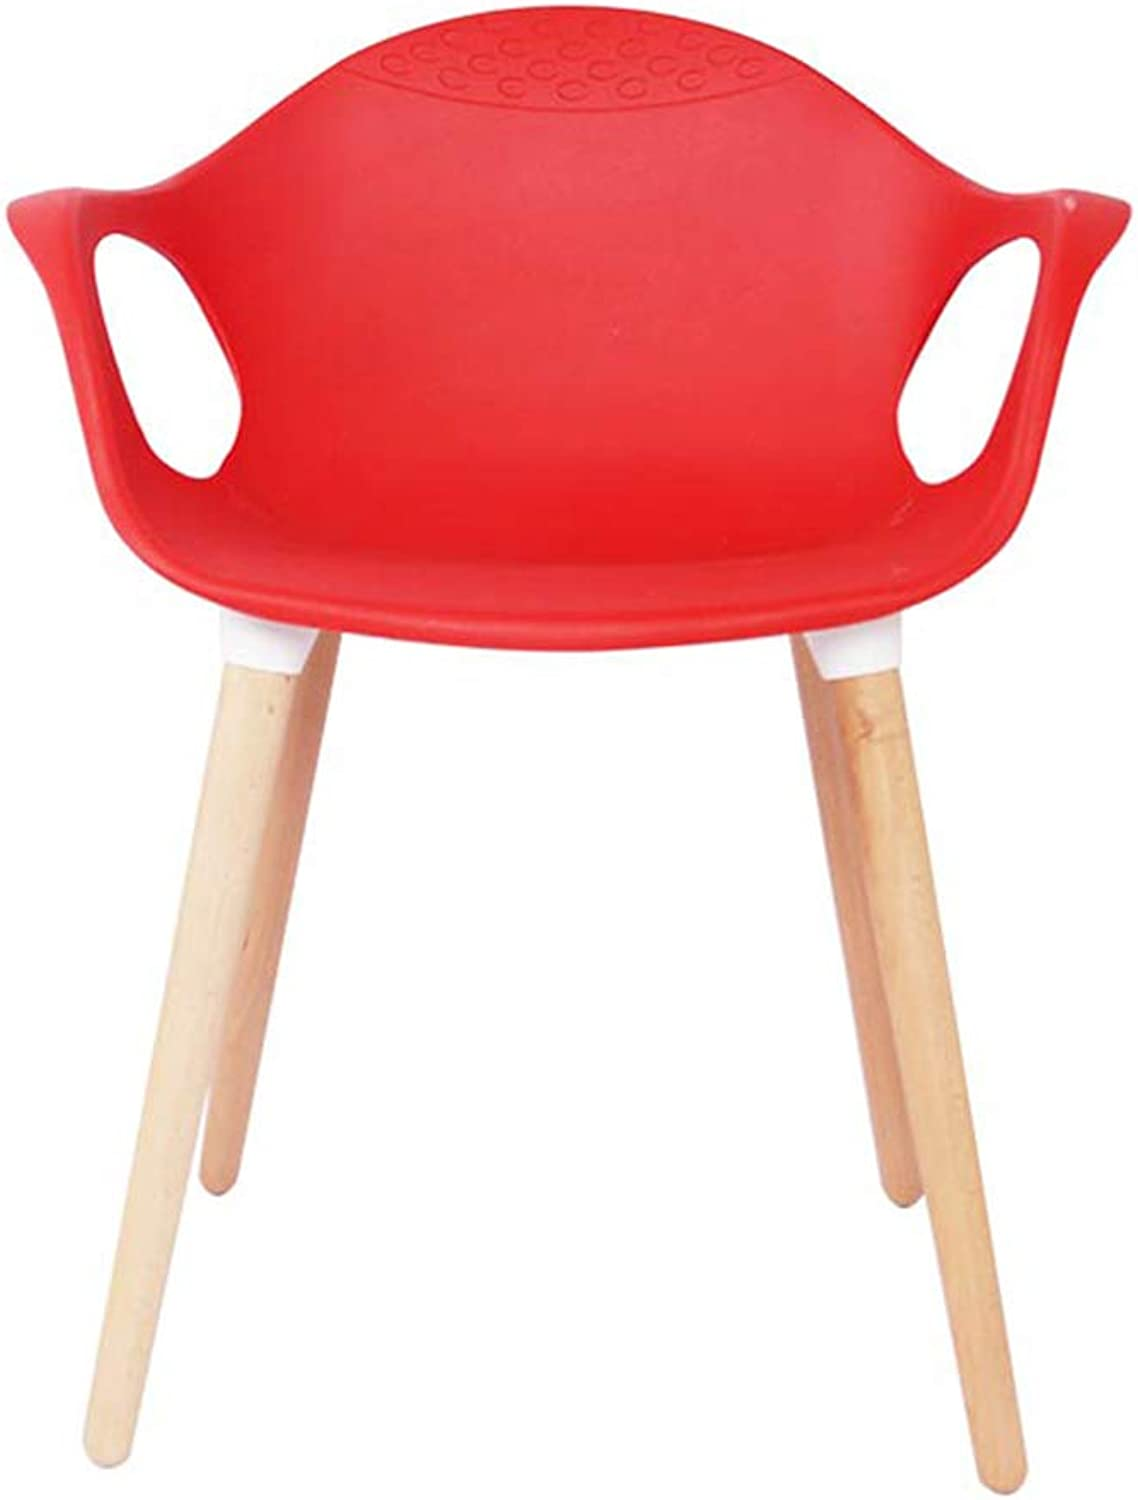 Wooden Dining Chairs Barstool Makeup Stool Office Chair Leisure Chairs,Backrest,for Cafe Lounge Study Room Living Room Restaurant Pub,2 colors